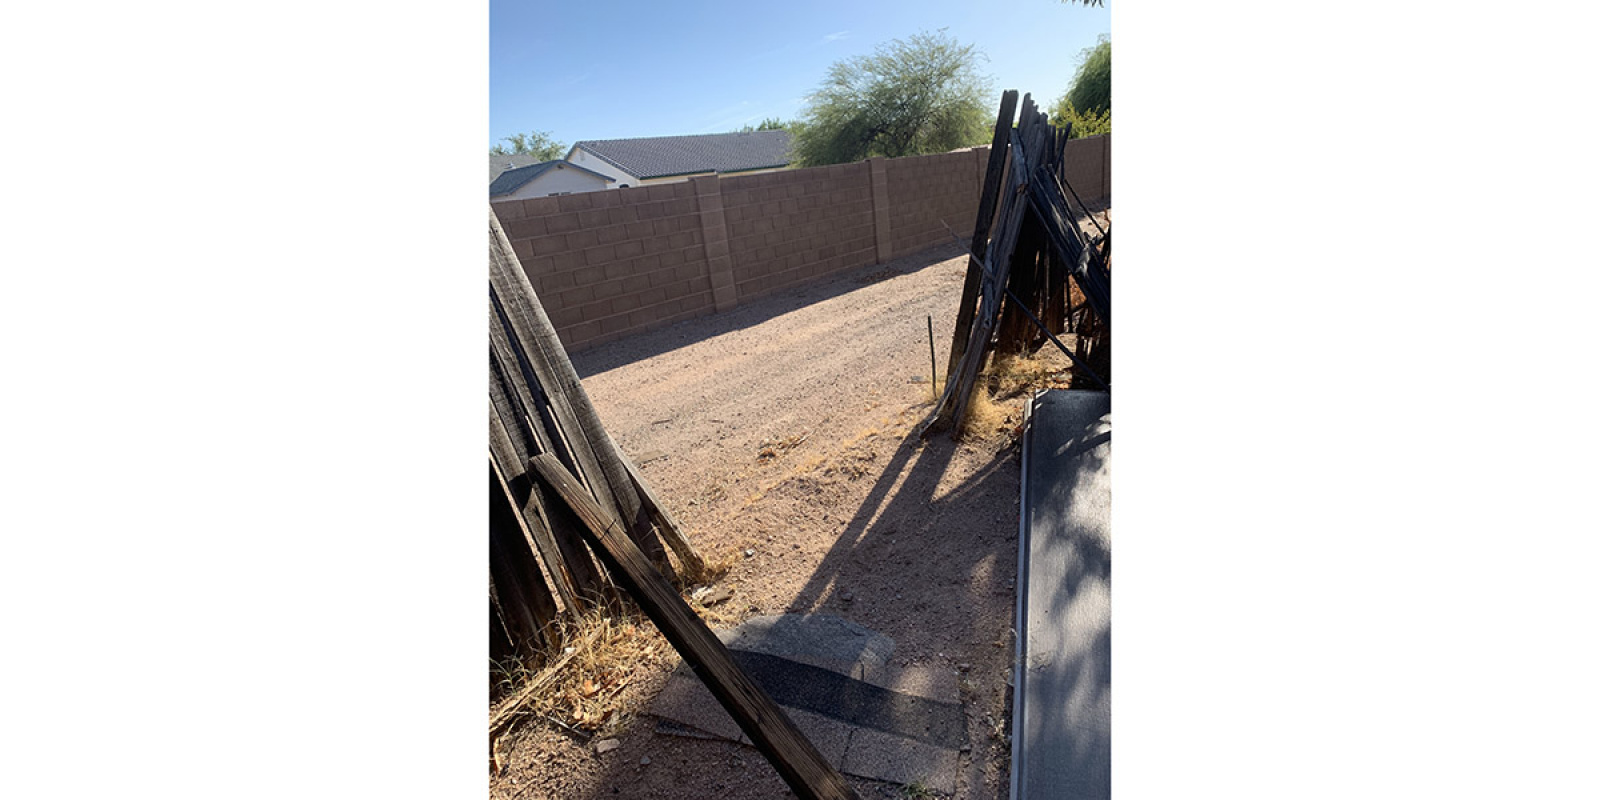 1907 W 10th Ave, Apache Junction, Arizona 85120, 3 Bedrooms Bedrooms, ,3 BathroomsBathrooms,SFR,Available,W 10th Ave,1211